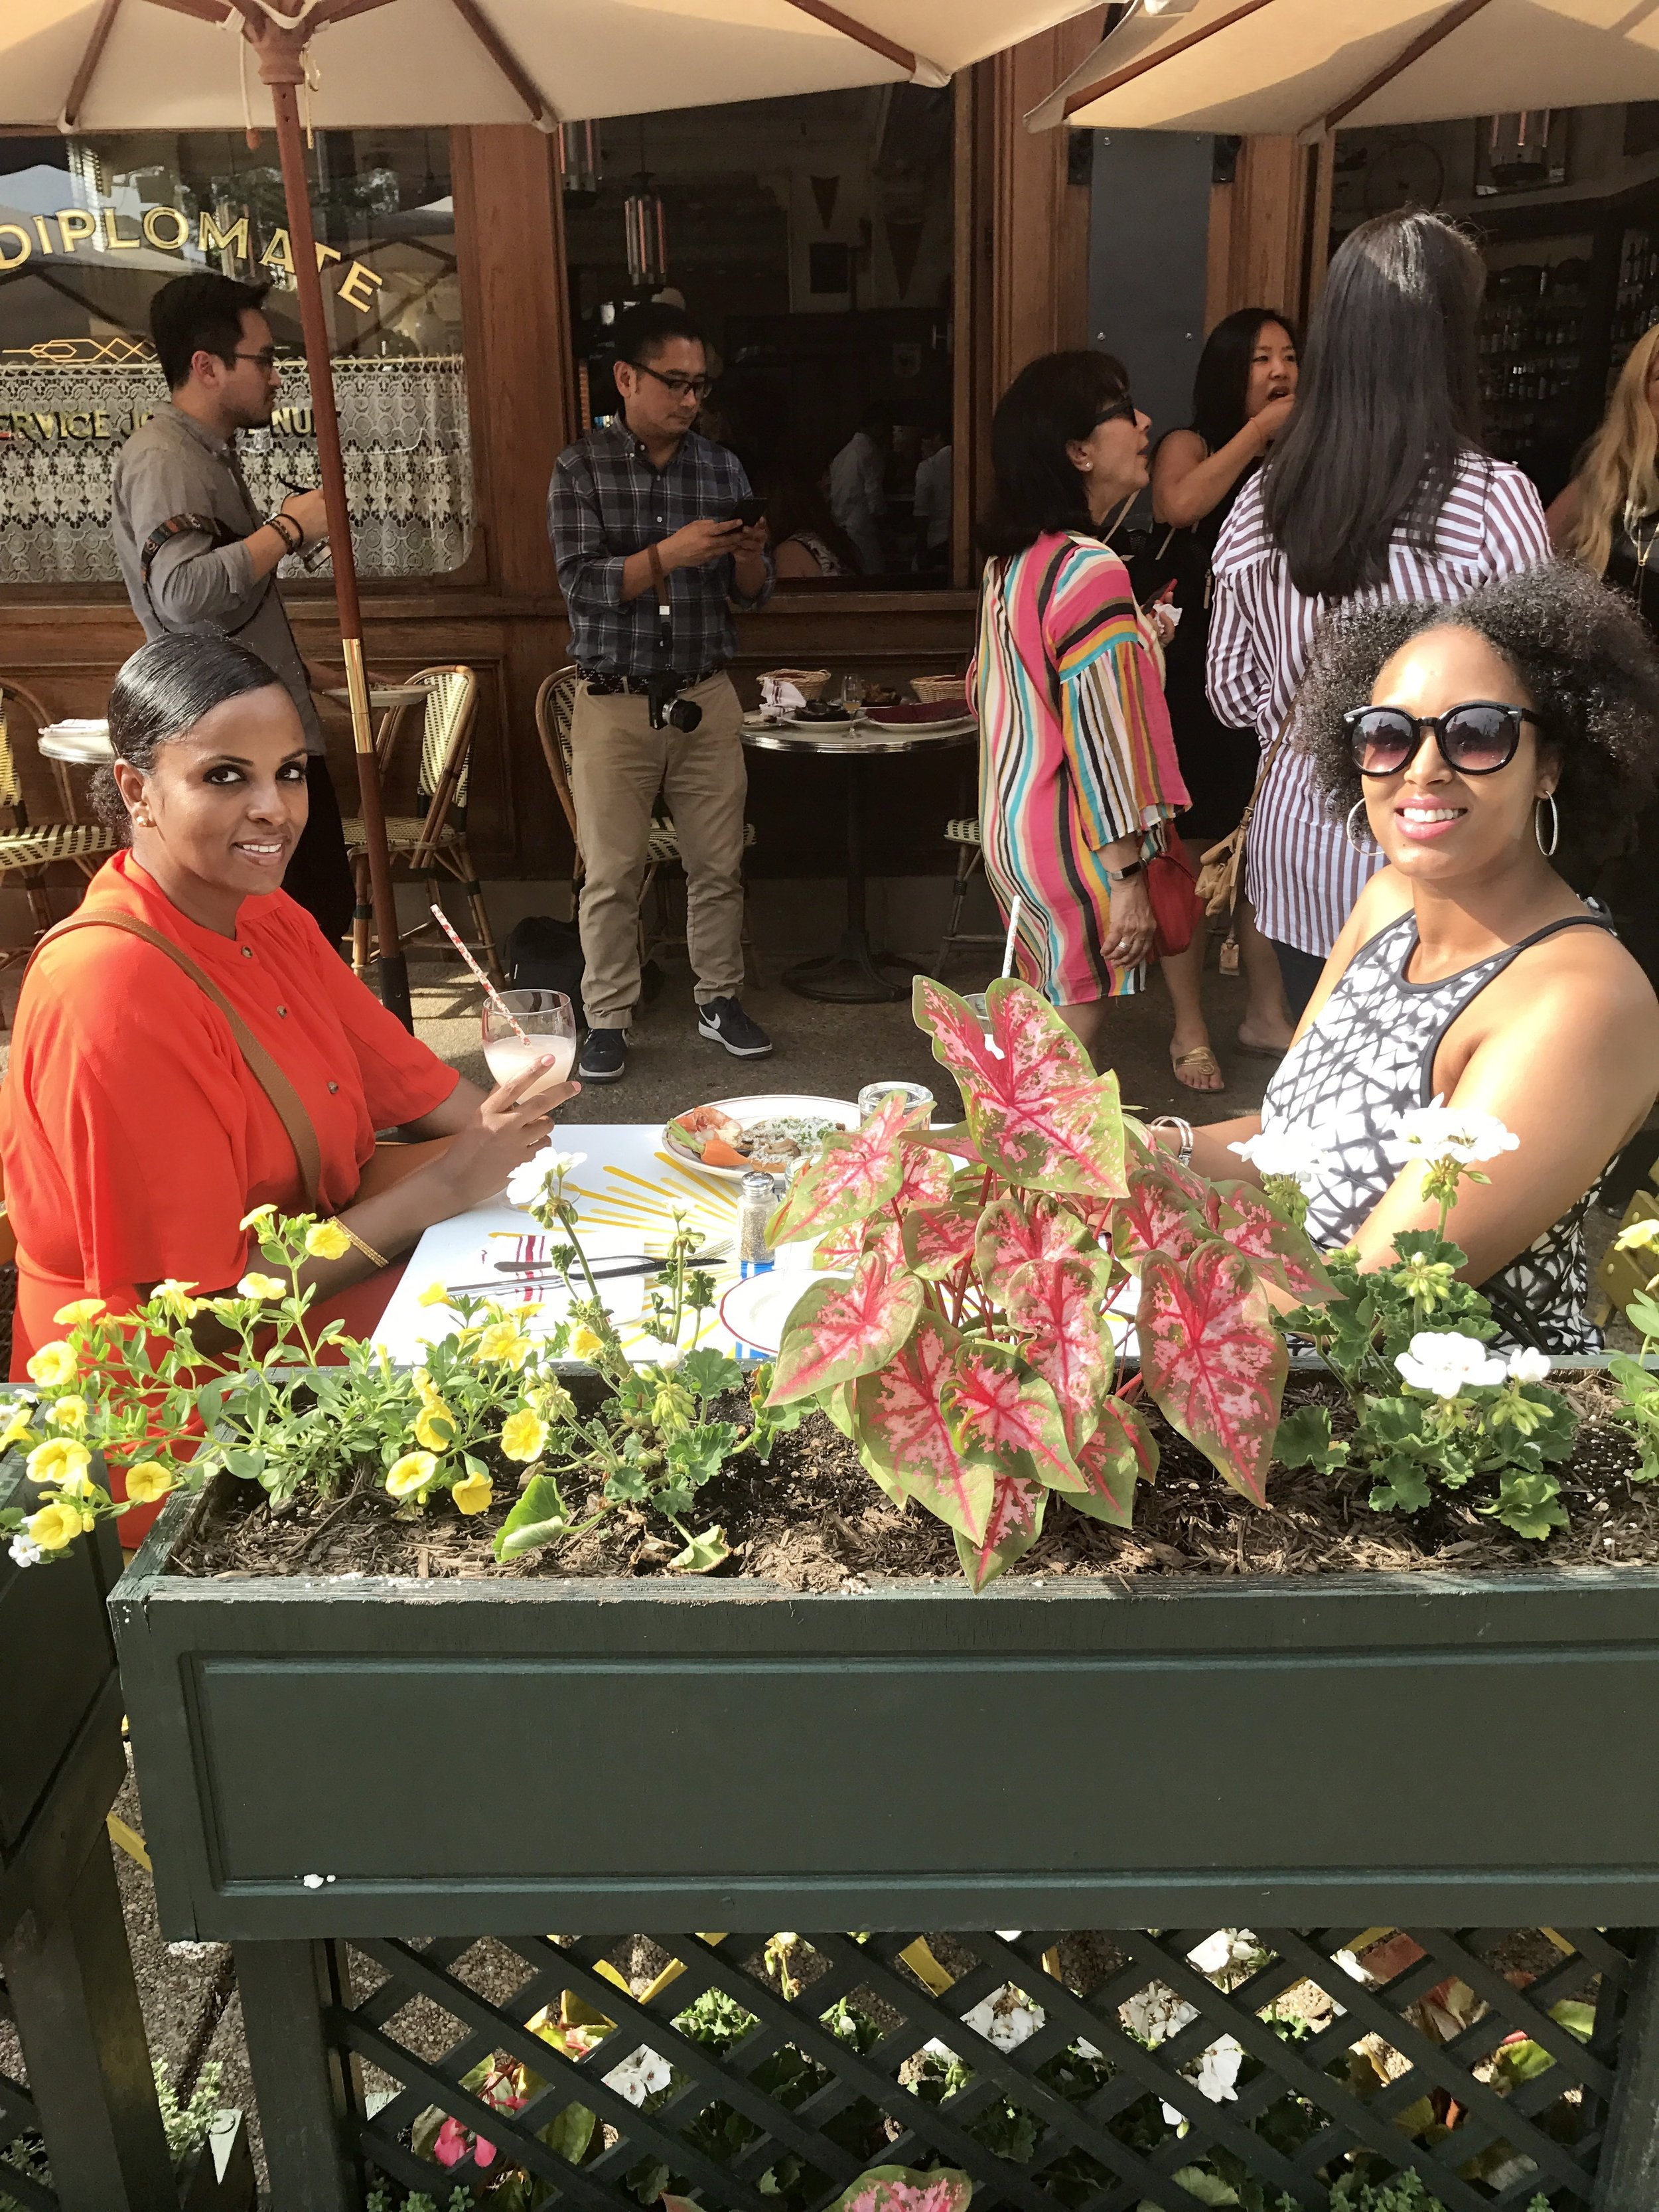 My cousin, Anki and I enjoying the beautiful sun and atmosphere at the Le Diplomate party.